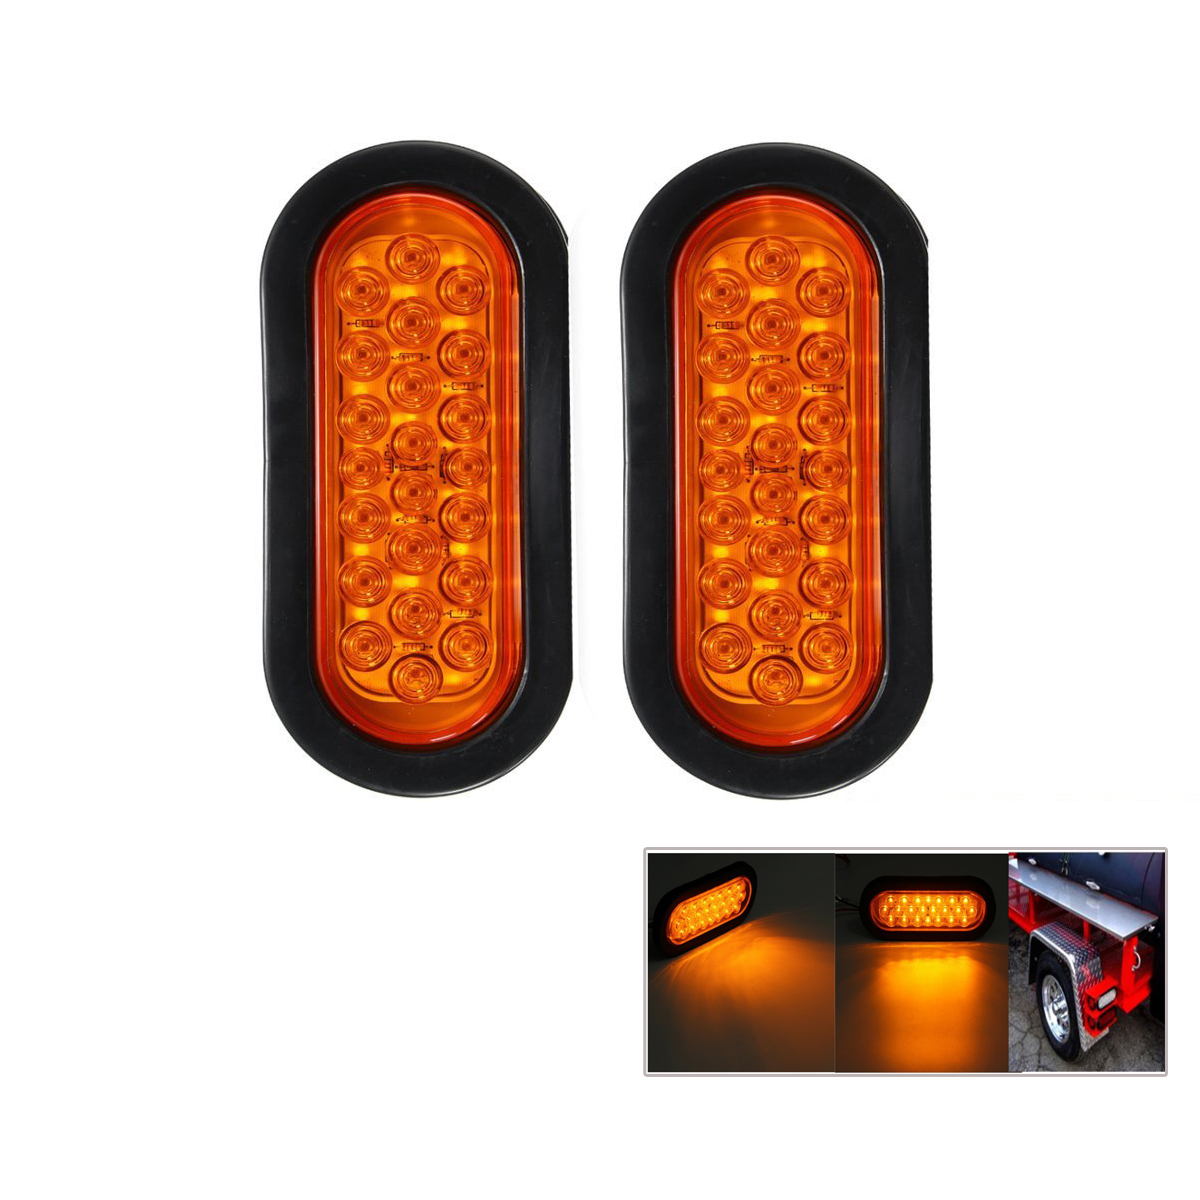 2pcs 12V 22-LED Oval Red Stop/Turn Signal/Brake/Marker/Tail LED Light Flush Mount for Tr ...